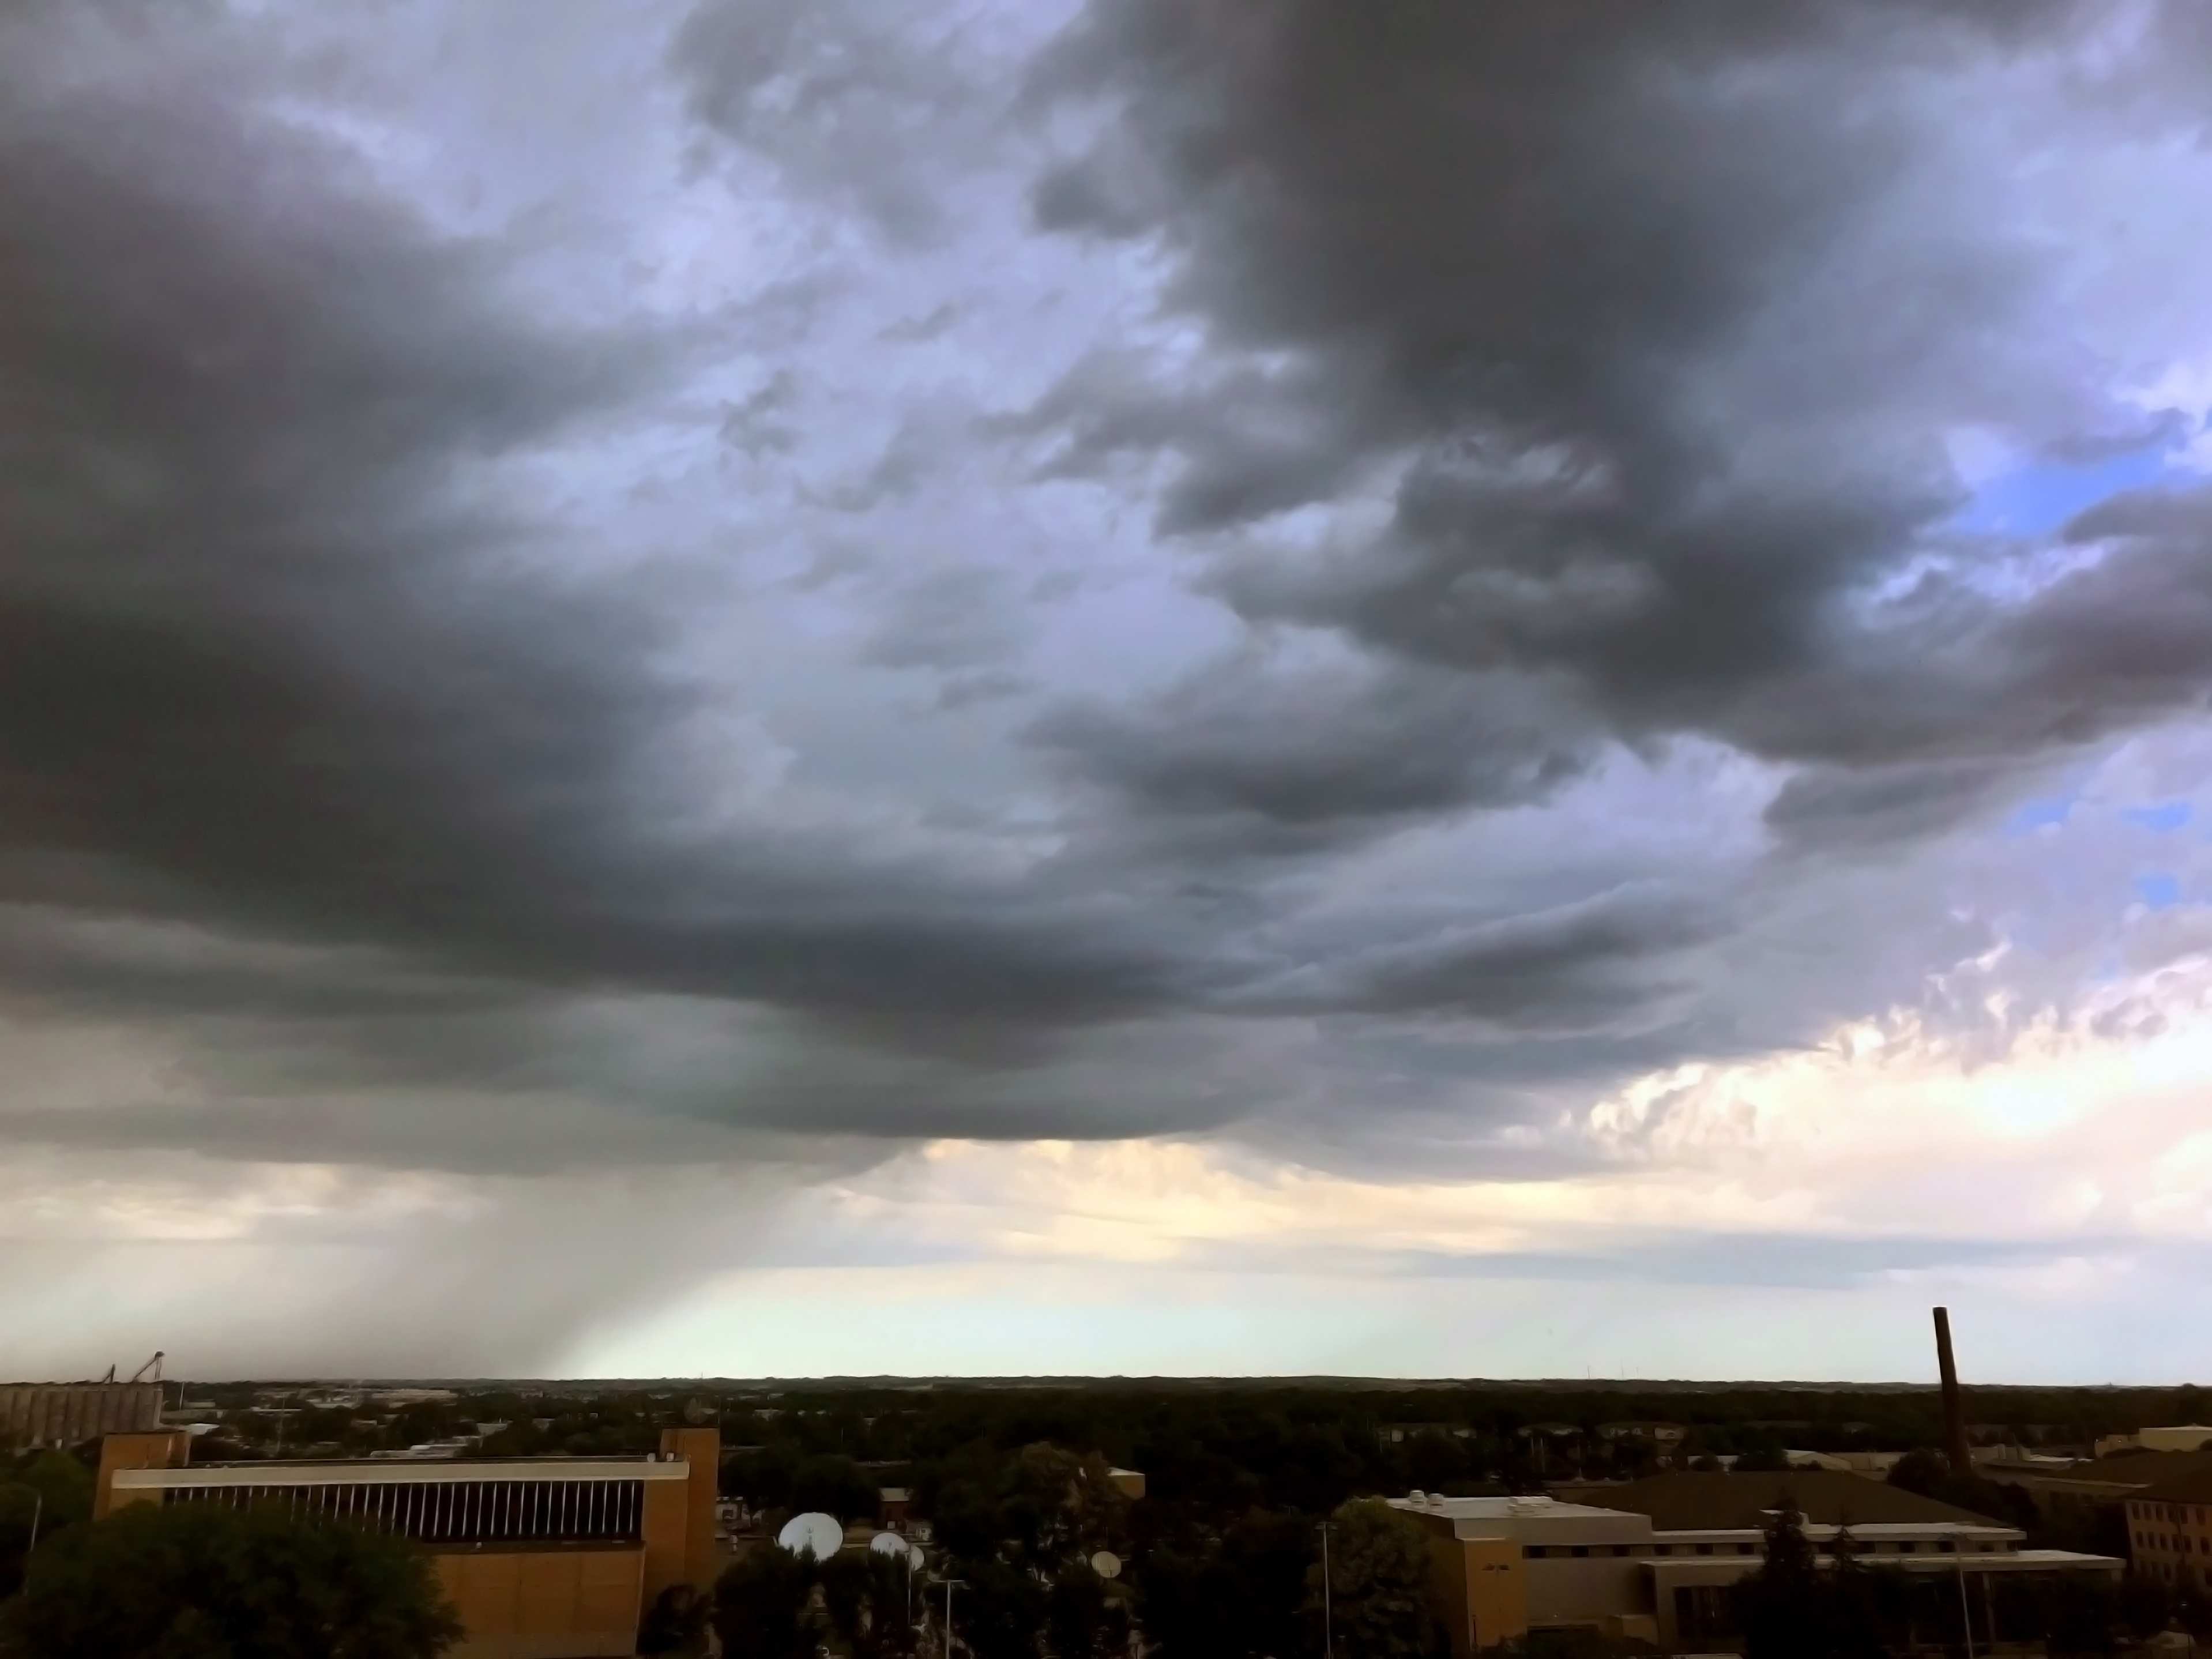 A storm rolls in over Lincoln, Nebraska, on June 25, 2019. | Shawna Richter-Ryerson, School of Natural Resources